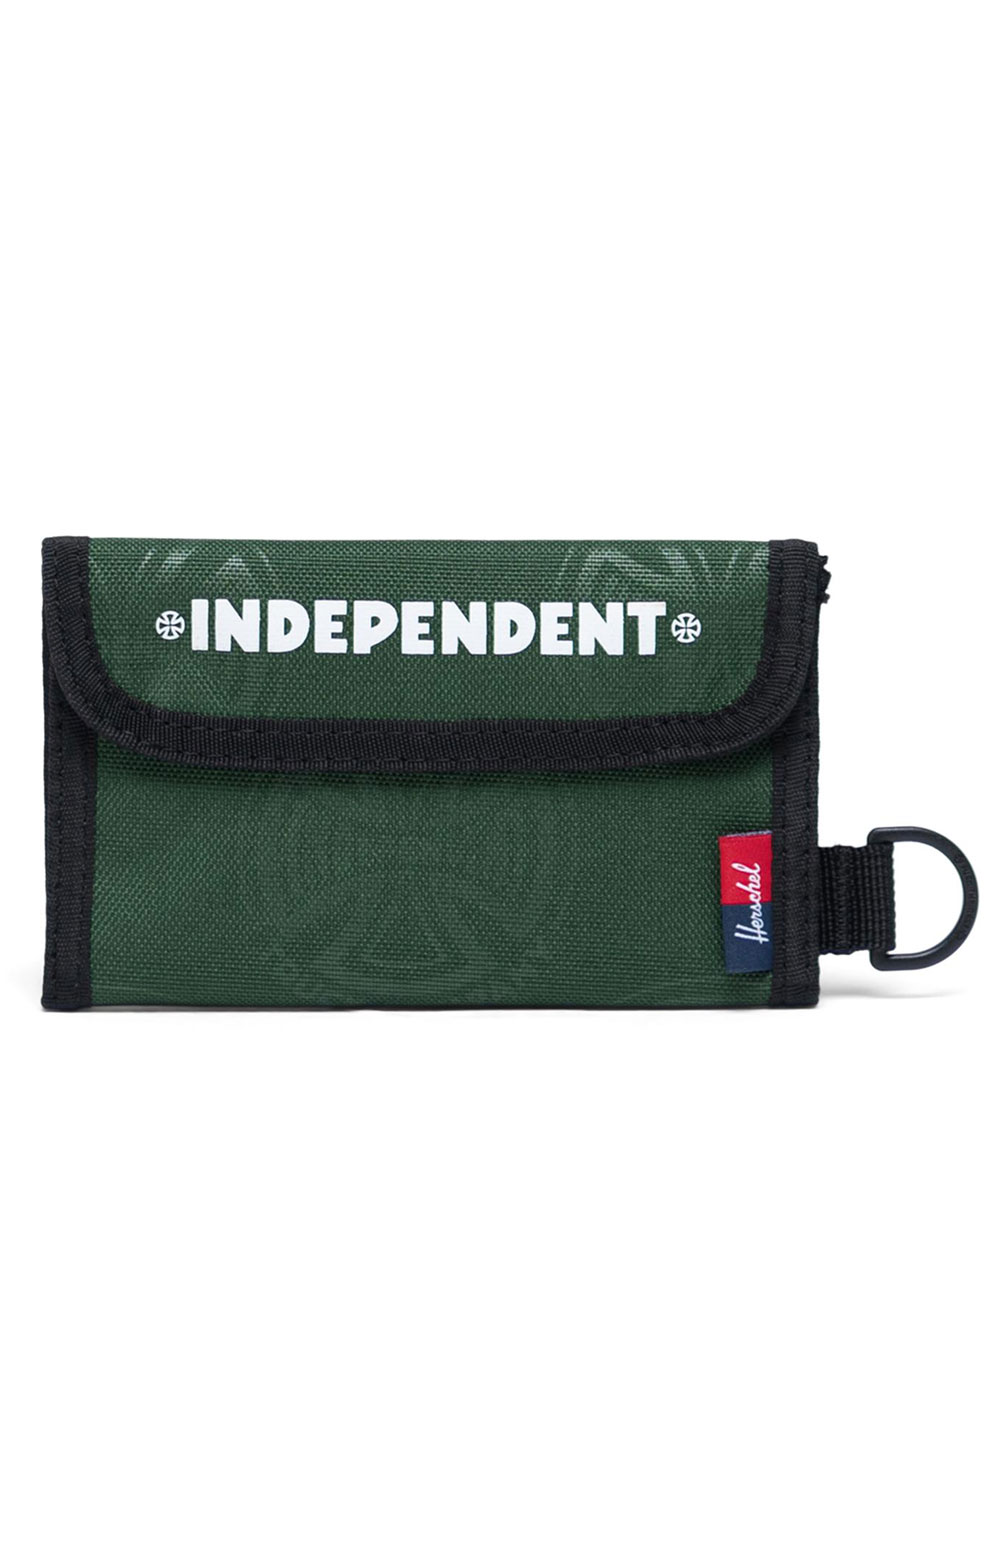 Fairway Wallet - Independent Multi Cross Greener Pastures